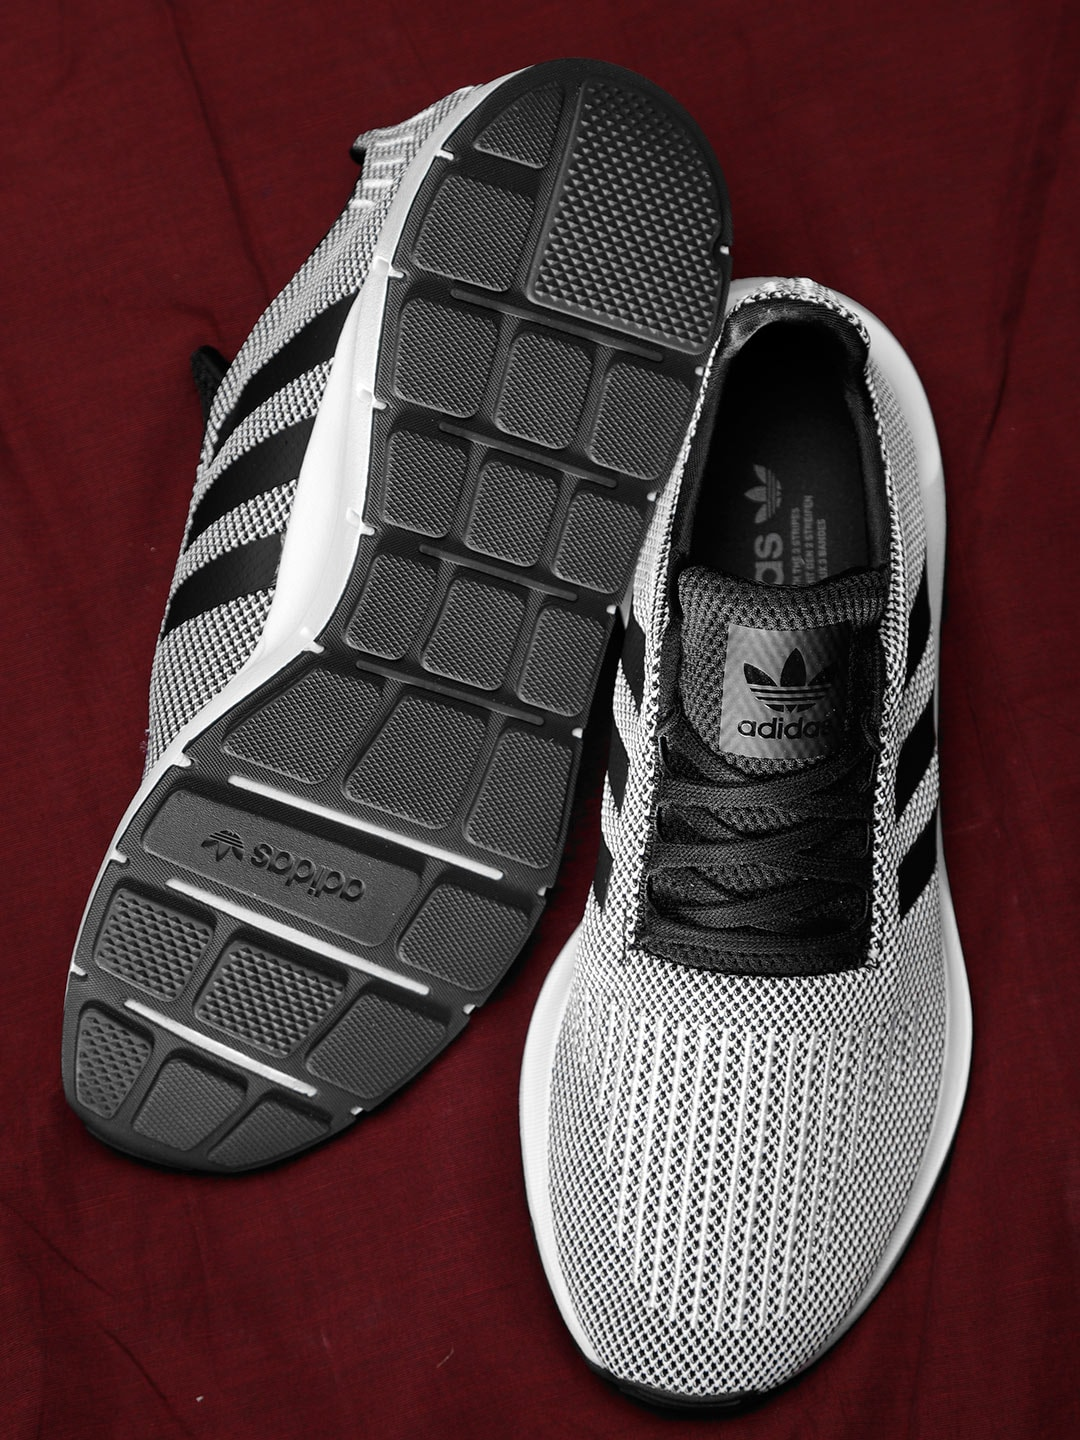 326baa1f58409 Swift Shoes - Buy Swift Shoes online in India